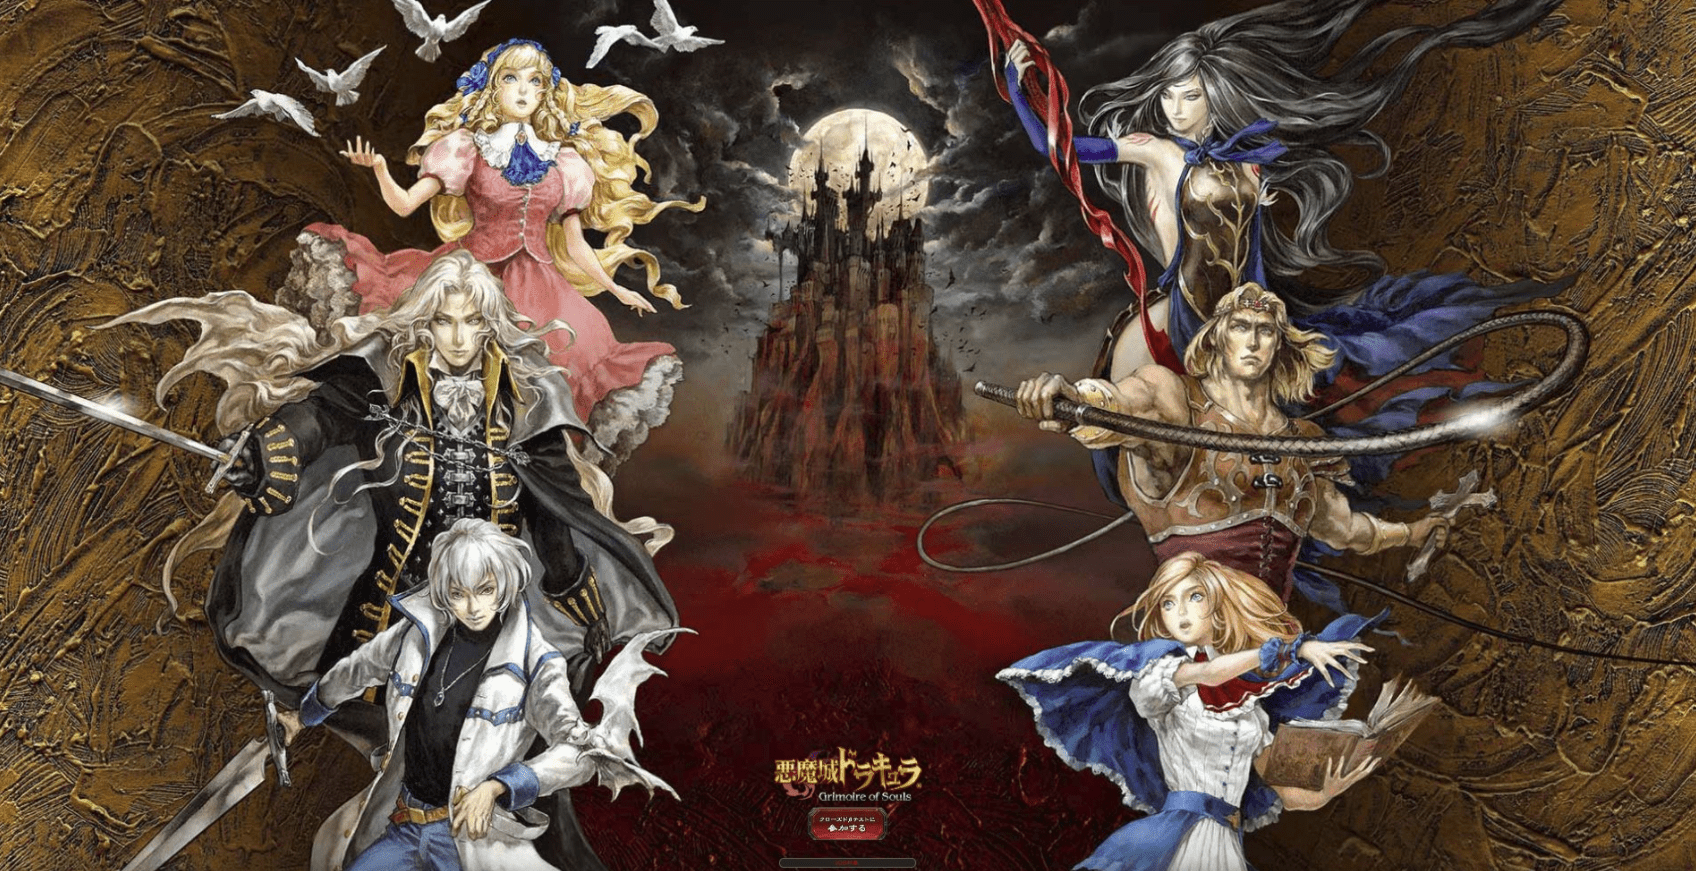 Konami announces a new 2D Castlevania game for mobile